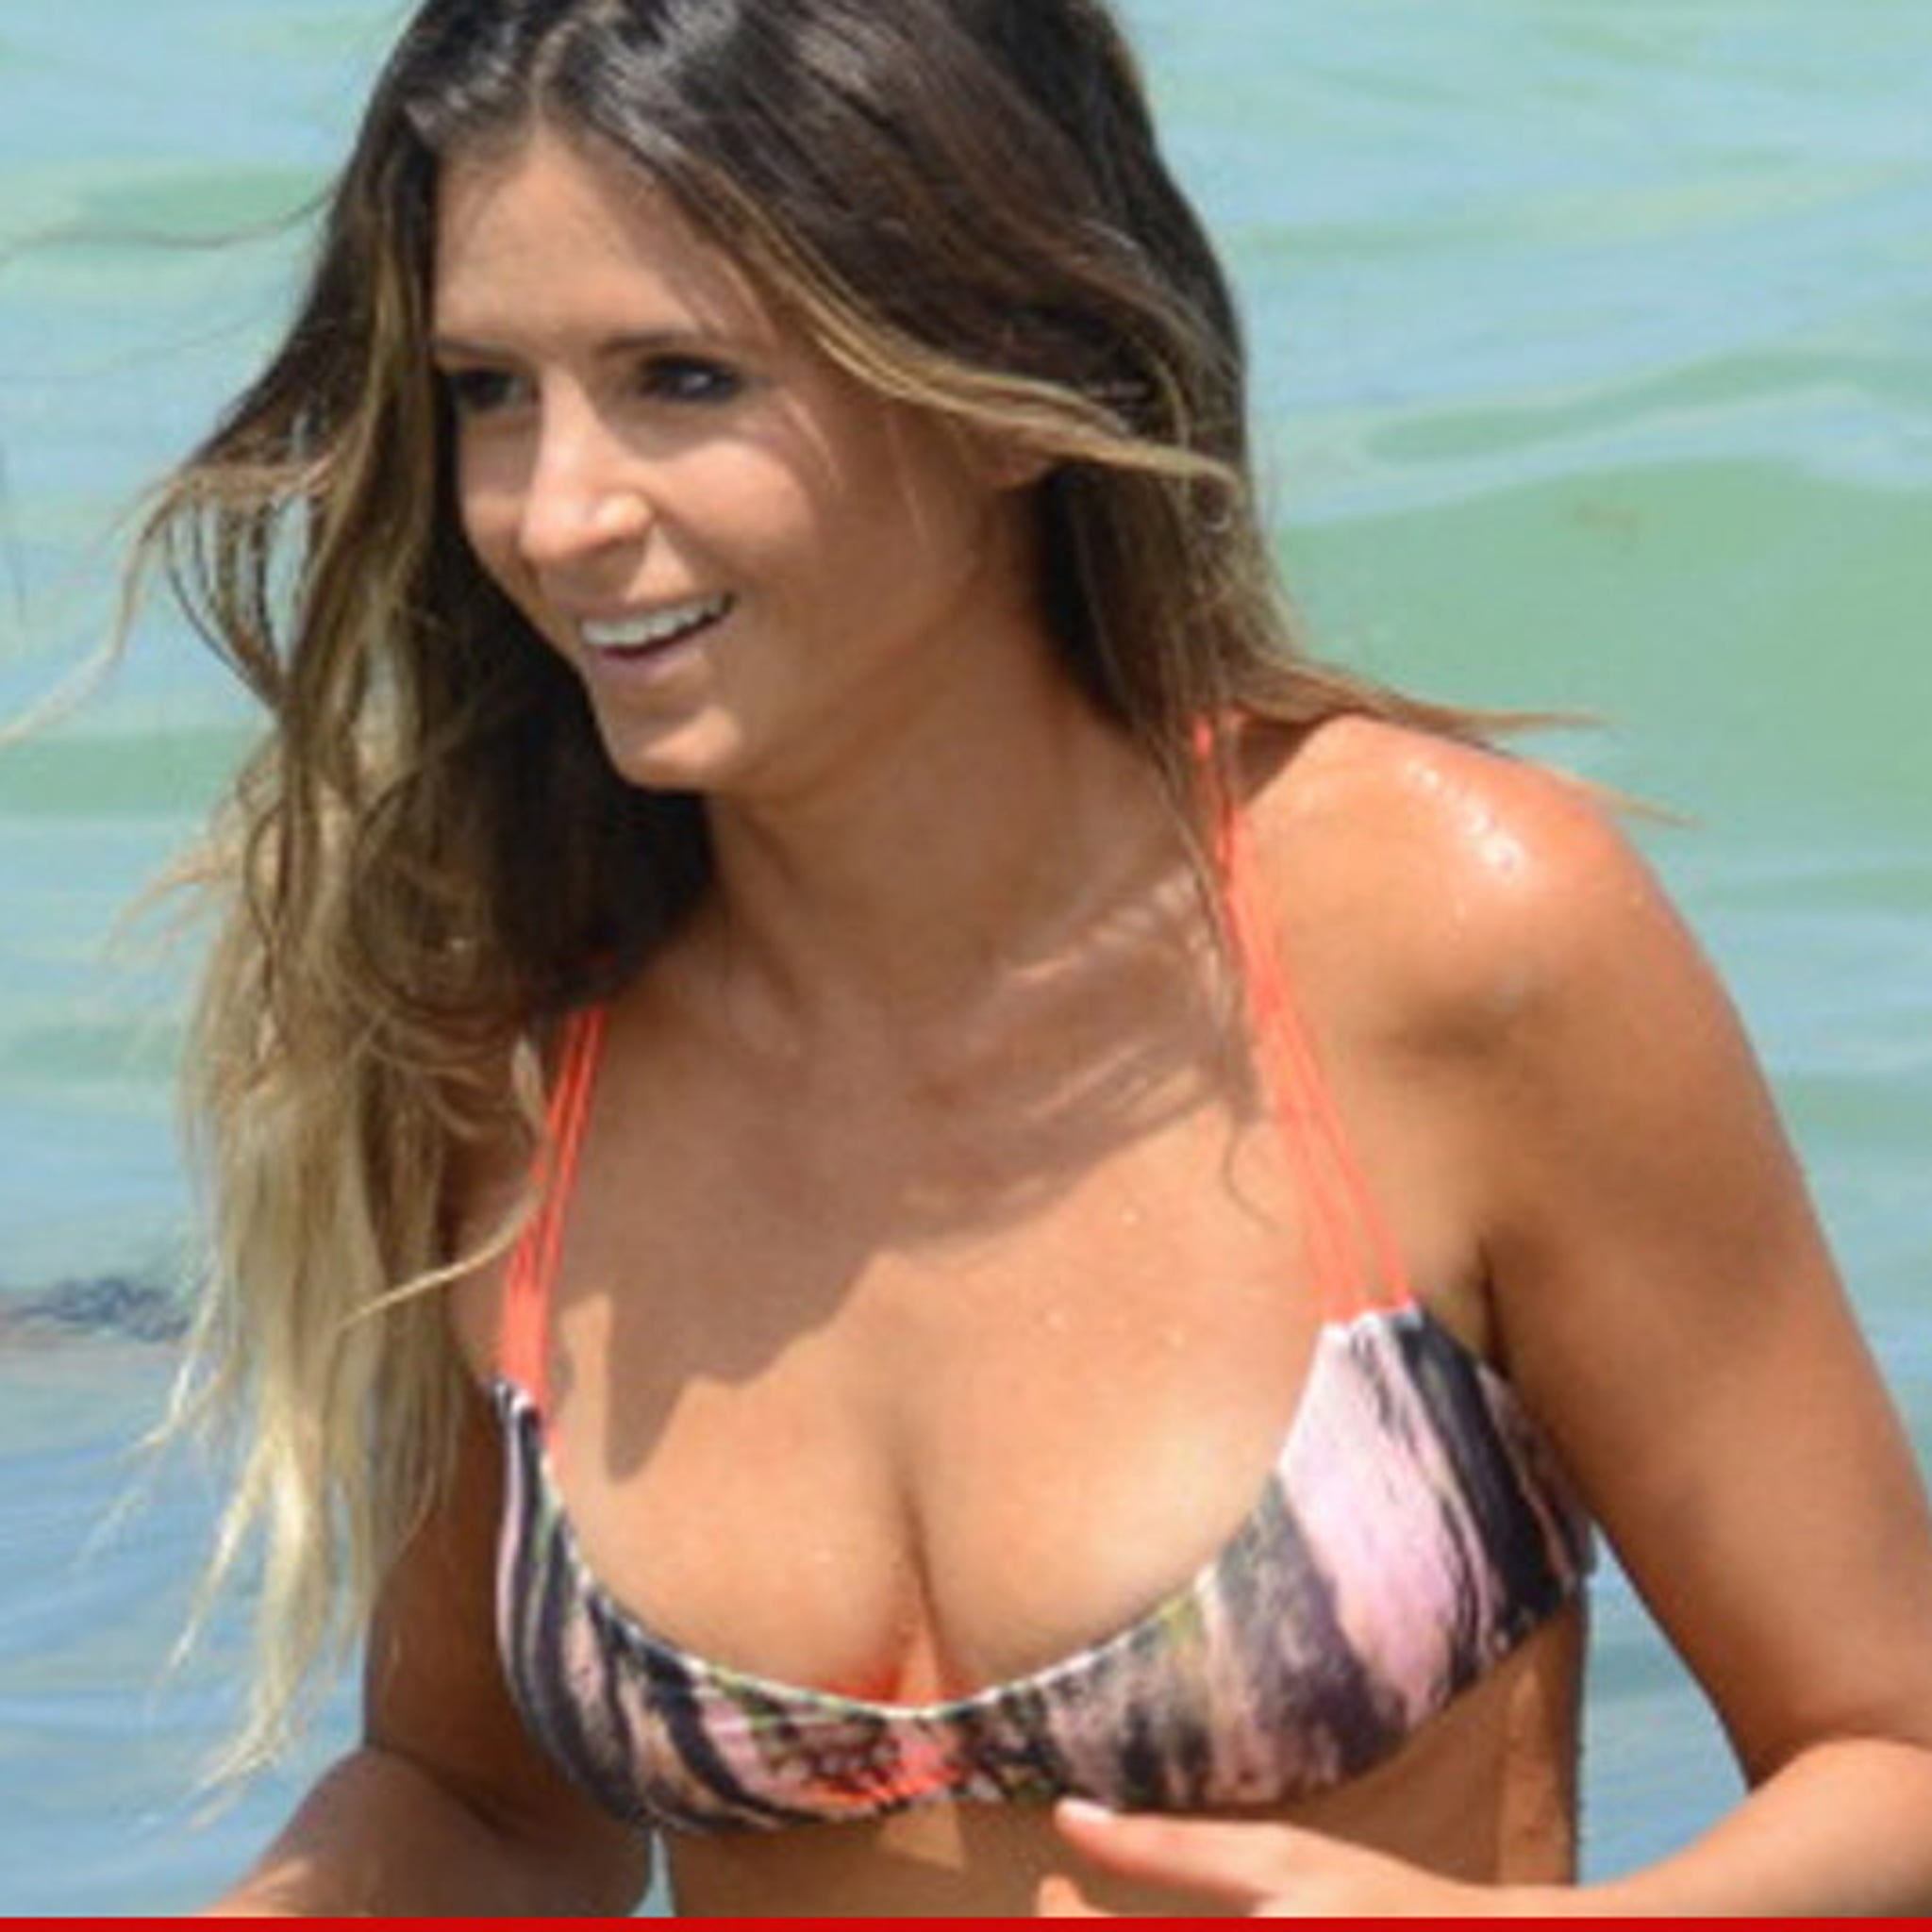 Anastasia Skyline Nude pro surfer anastasia ashley -- nearly nude footage stolen